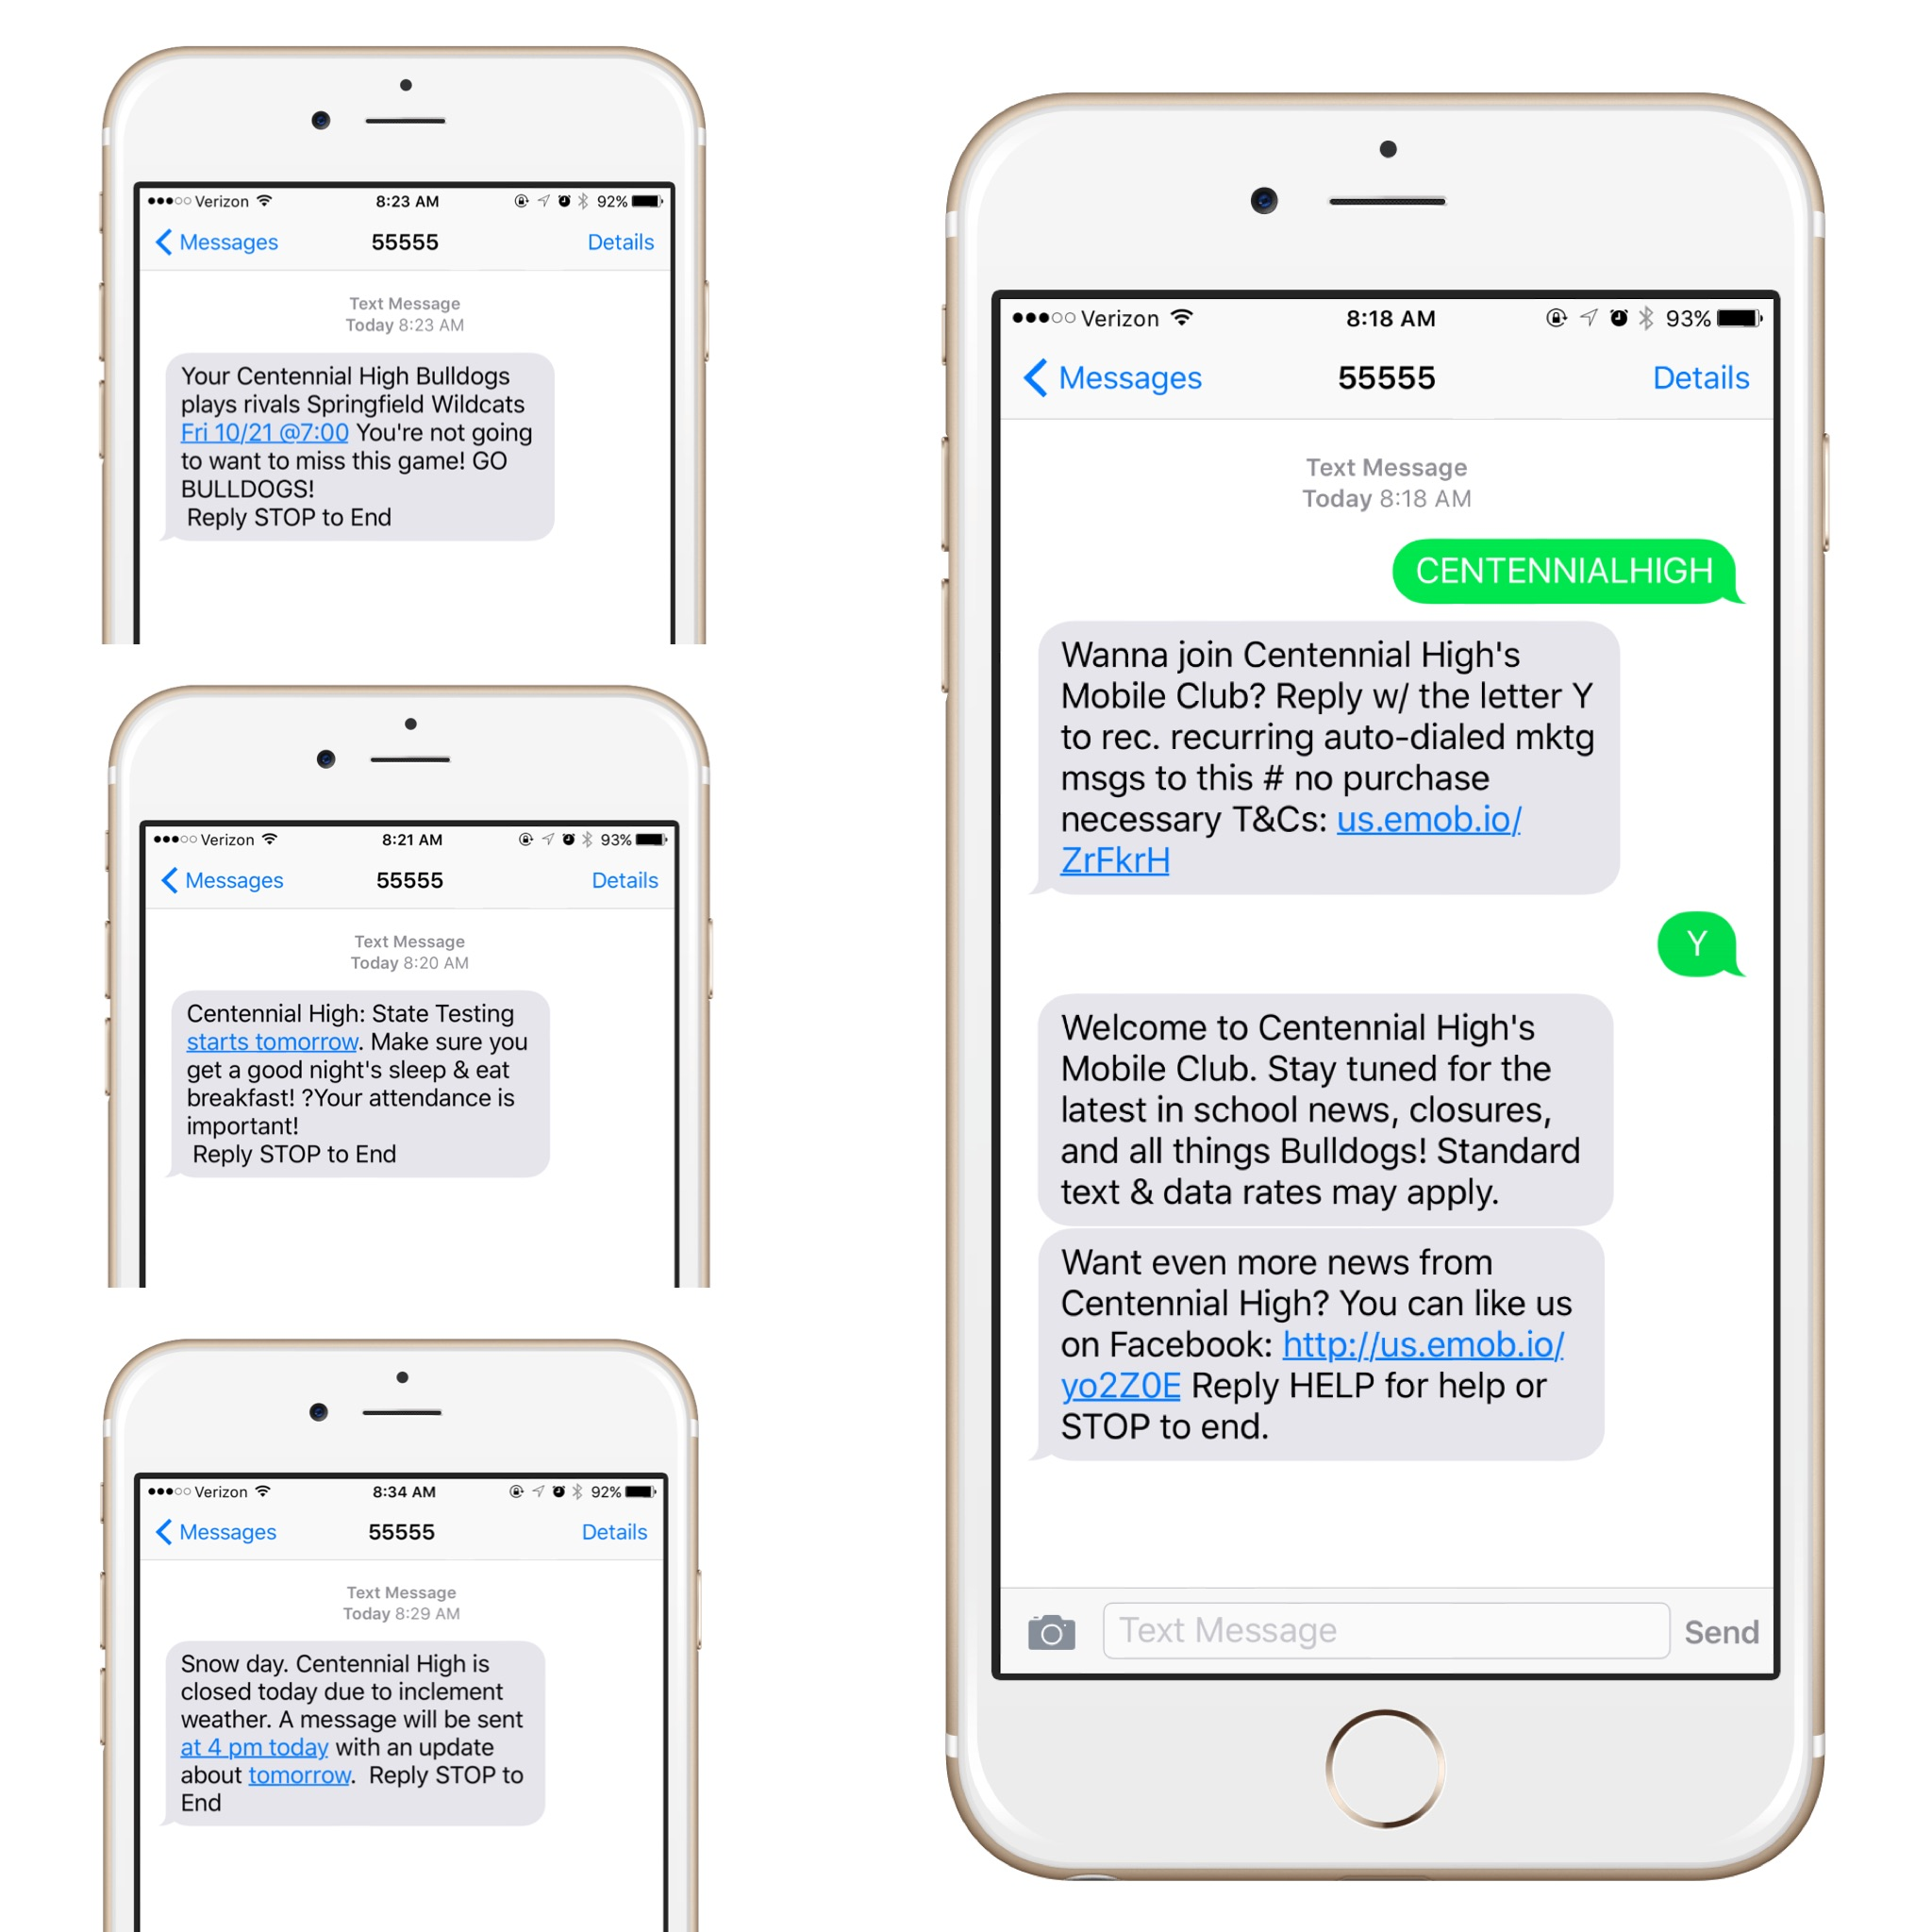 4 screen shots of iphones showing 4 different marketing text messages sent from SMS marketing software